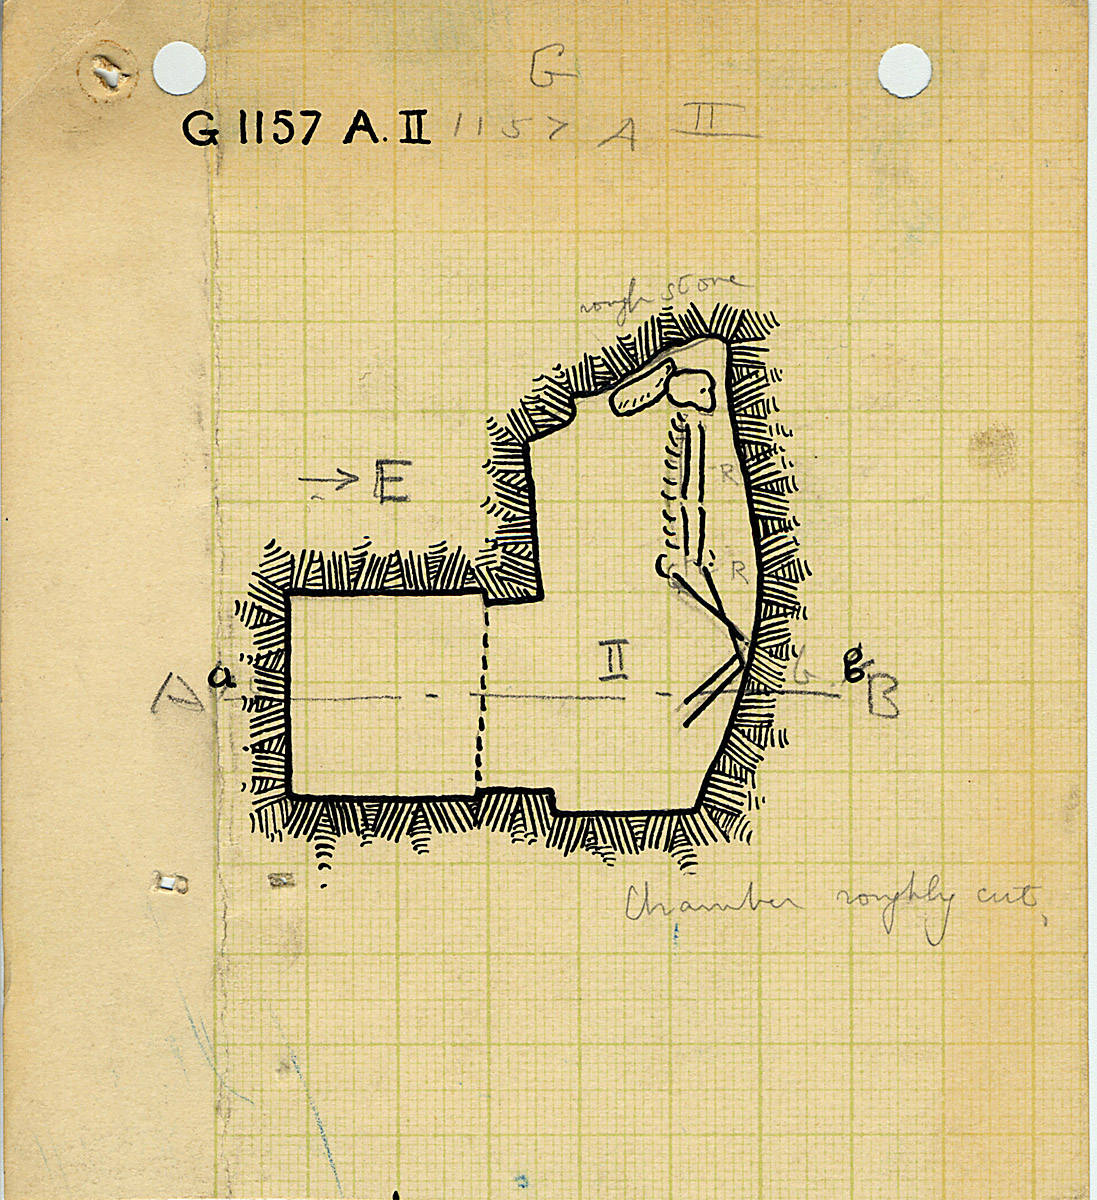 Maps and plans: G 1157, Shaft A (II)